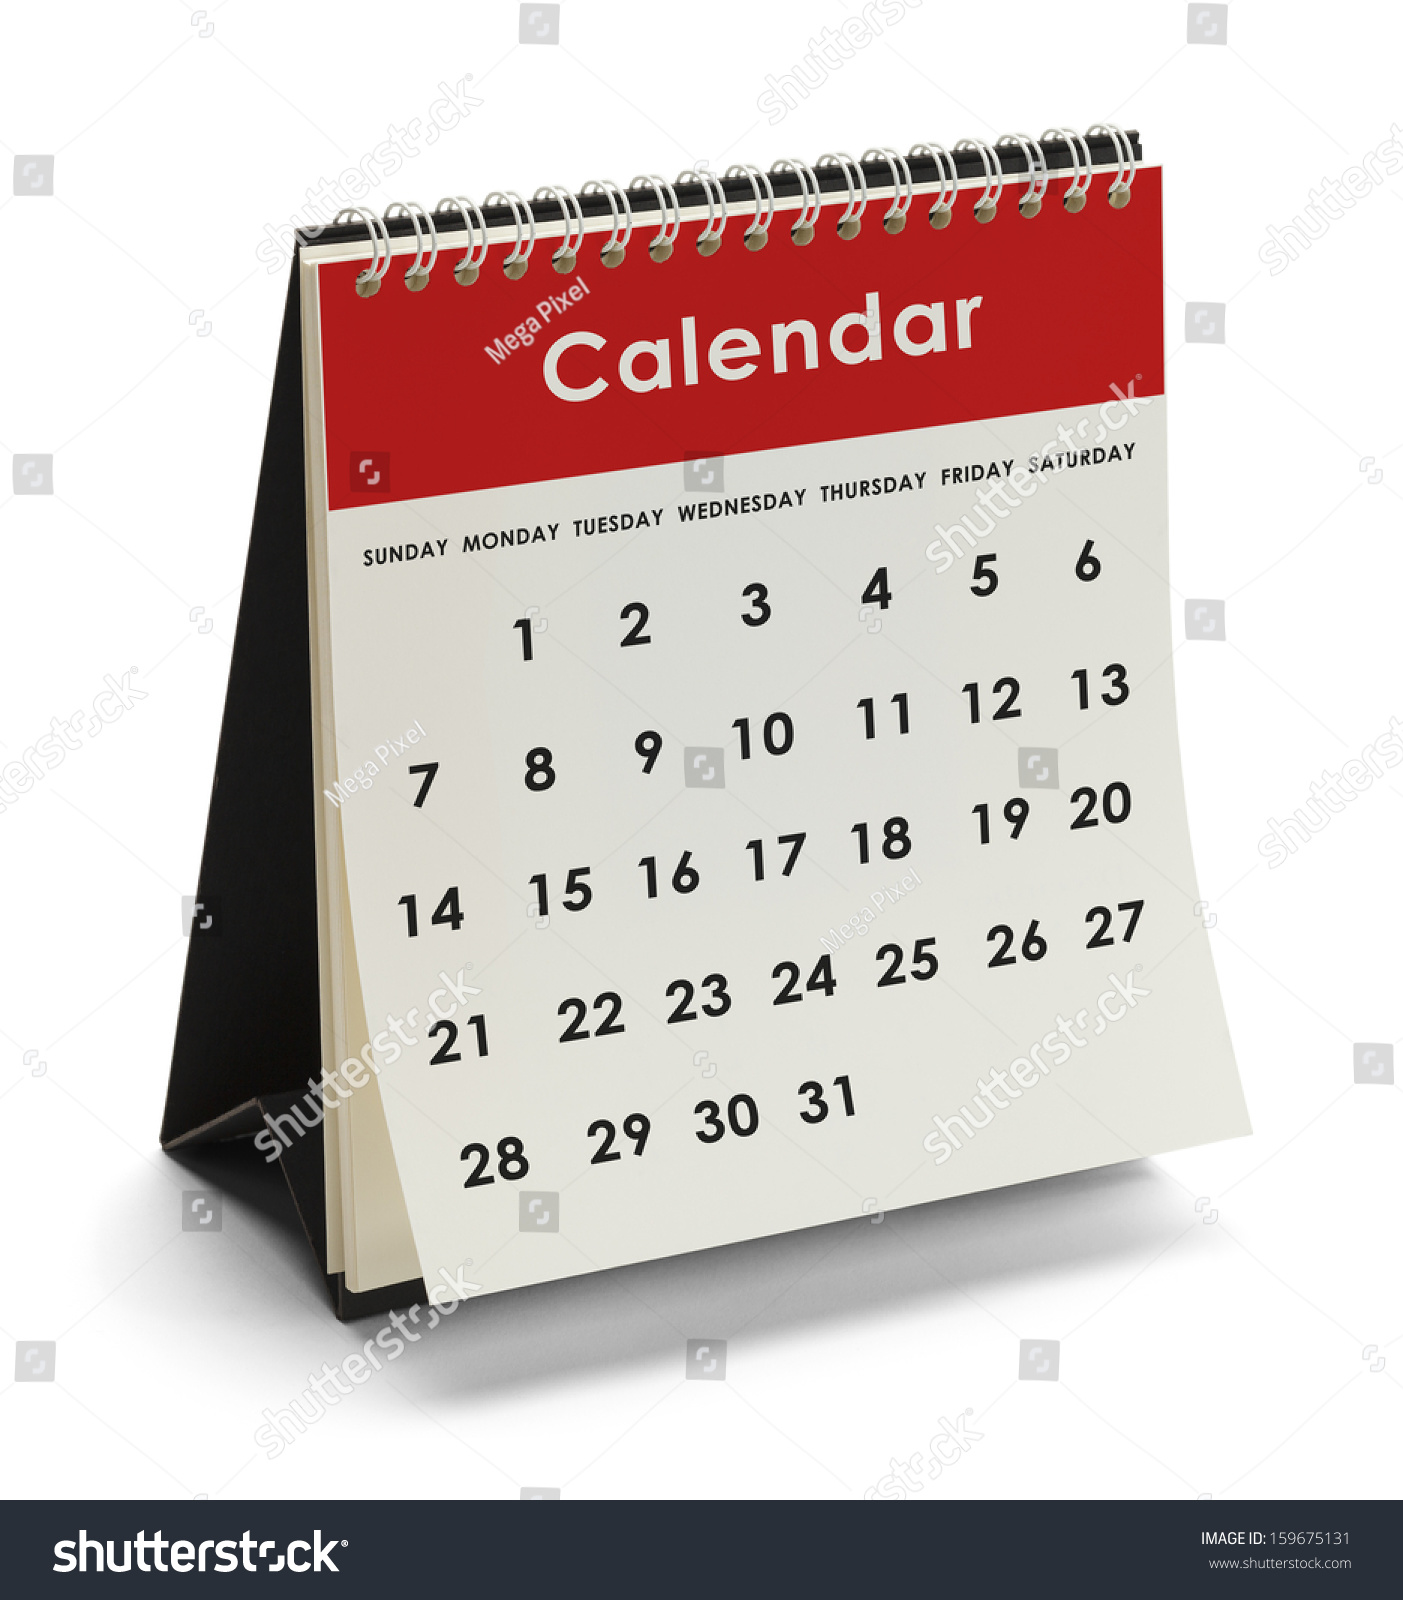 Generic Year Calendar : Generic calendar days dates isolated on stock photo